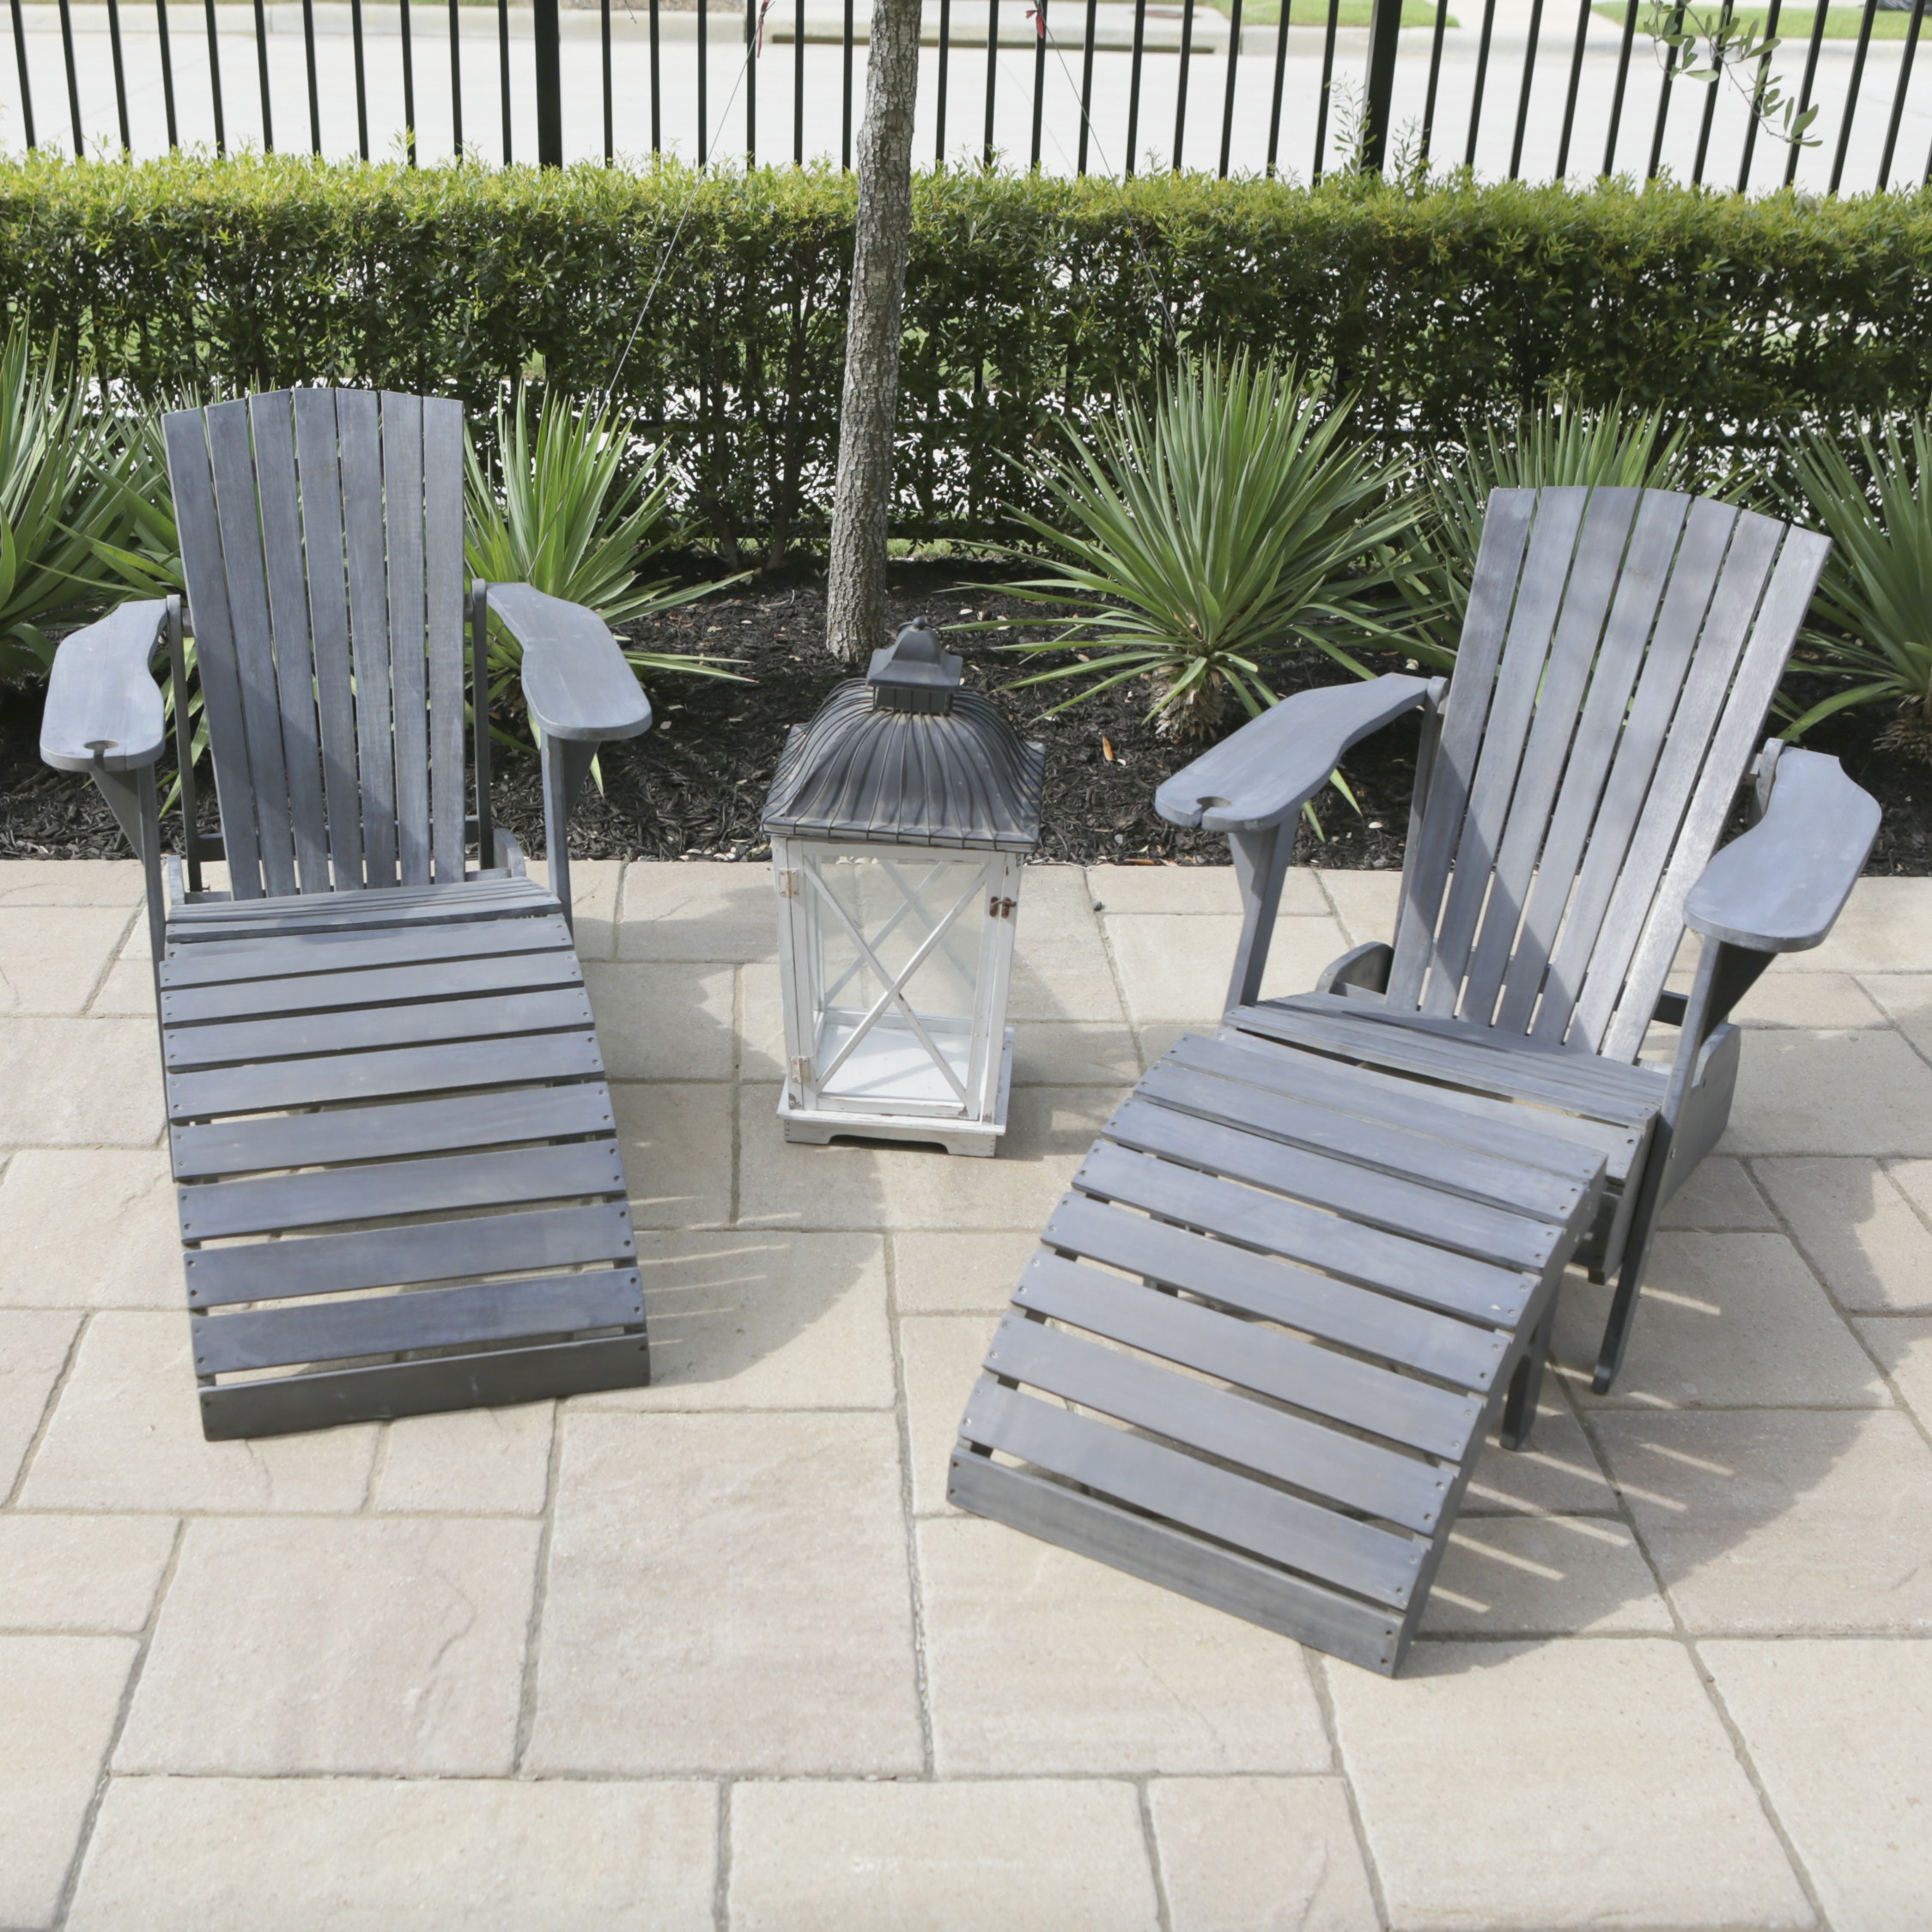 Adirondack Style Patio Chairs and Footrests